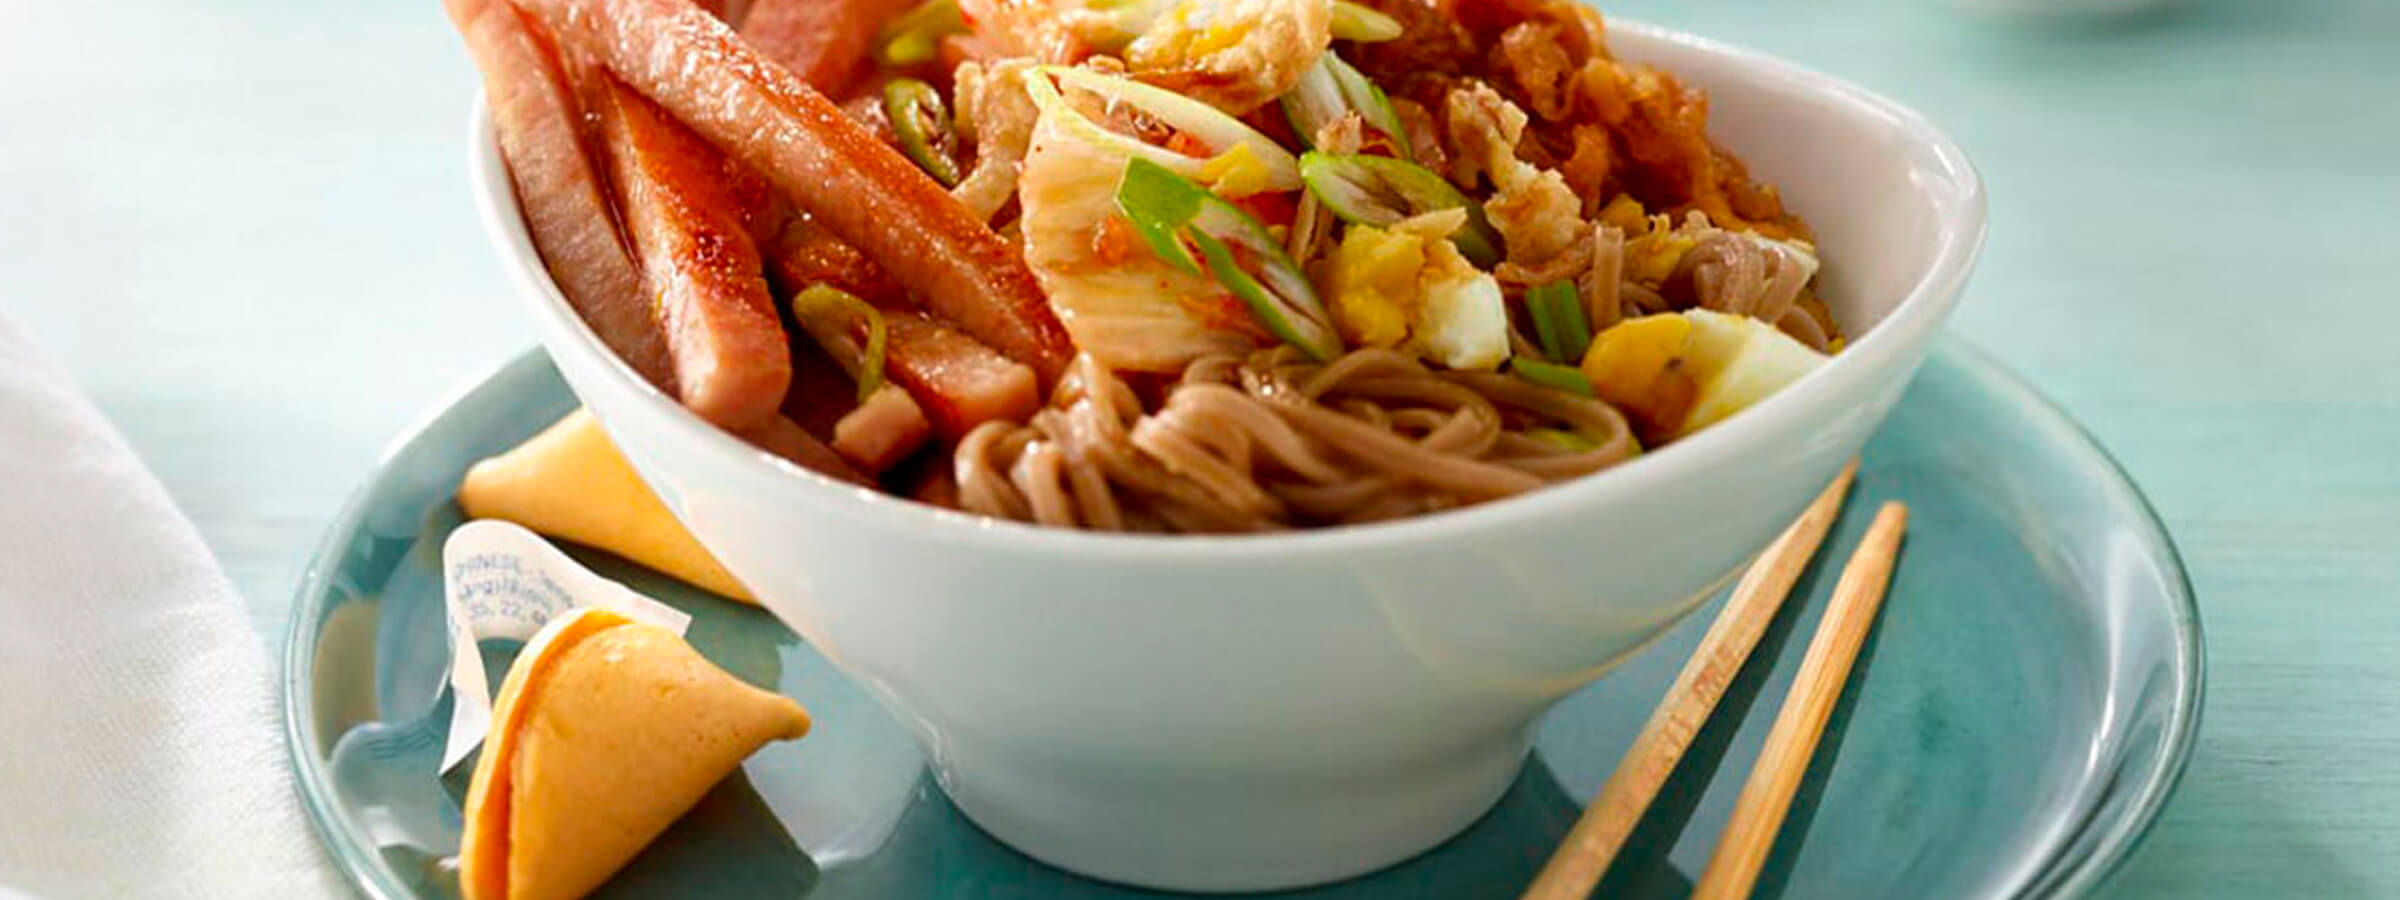 An asian bowl of noodles with Spam slices